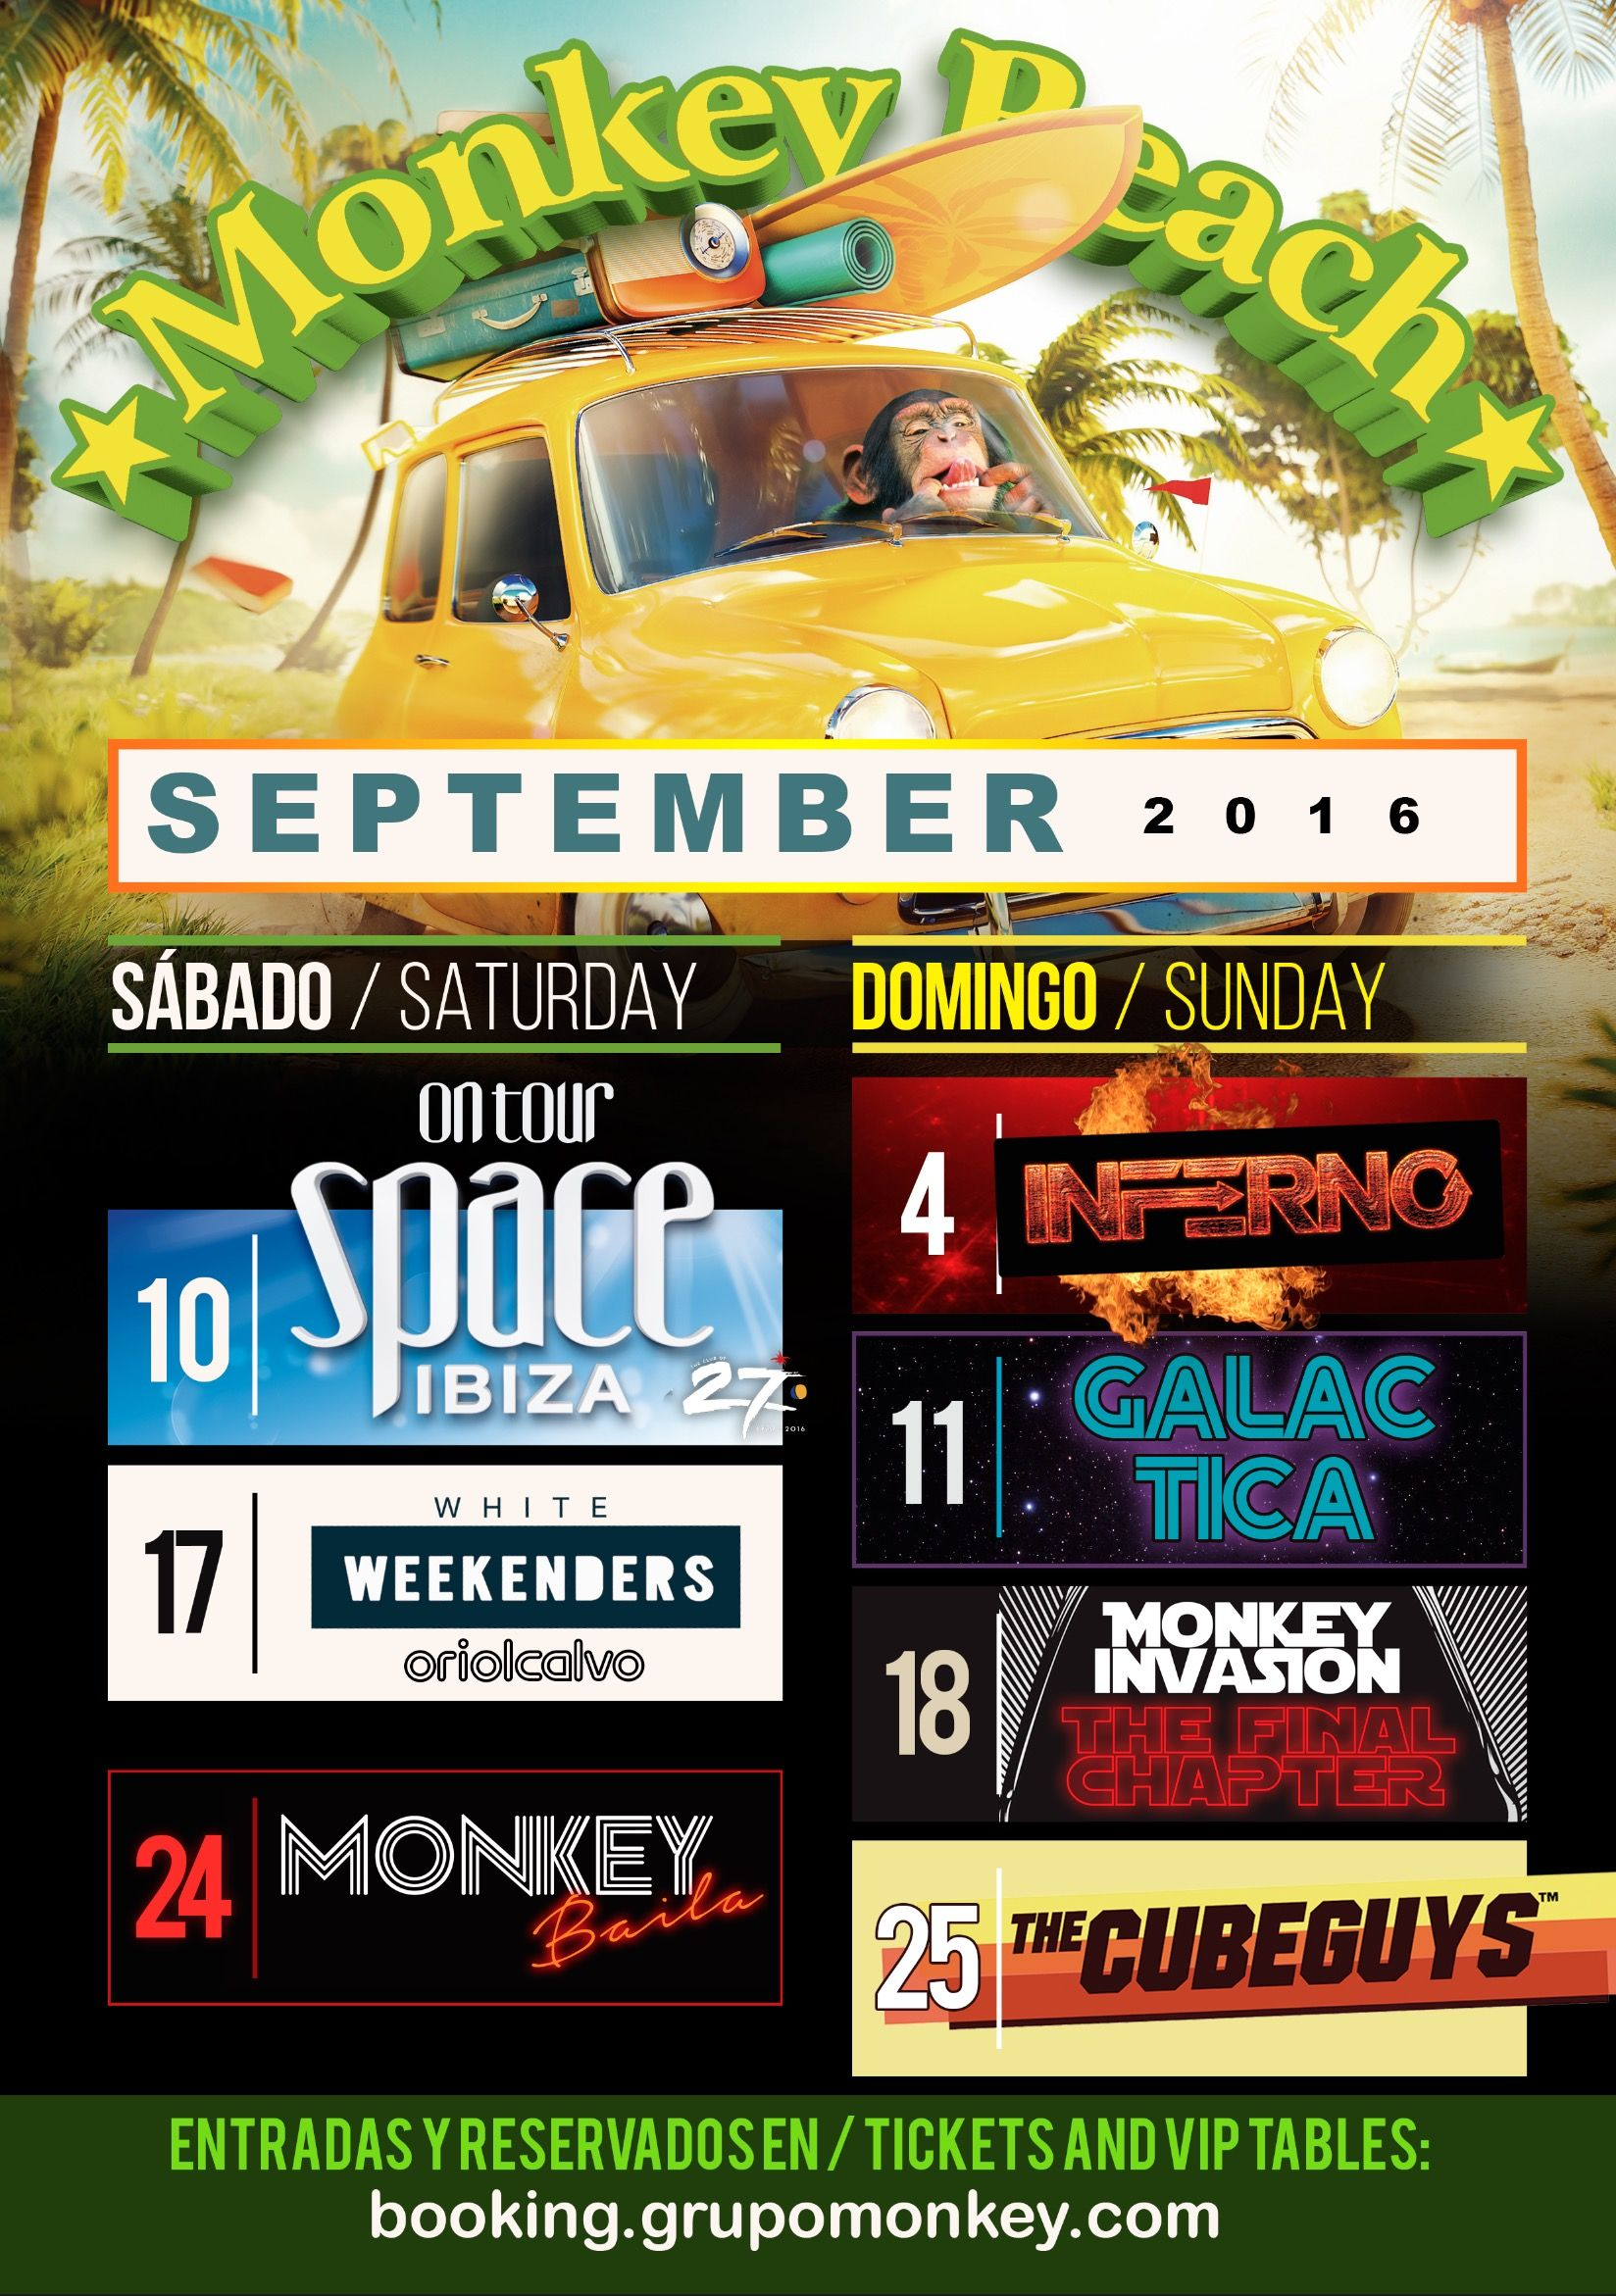 Parties-Septiember-Monkey-Beach-Club-tickets